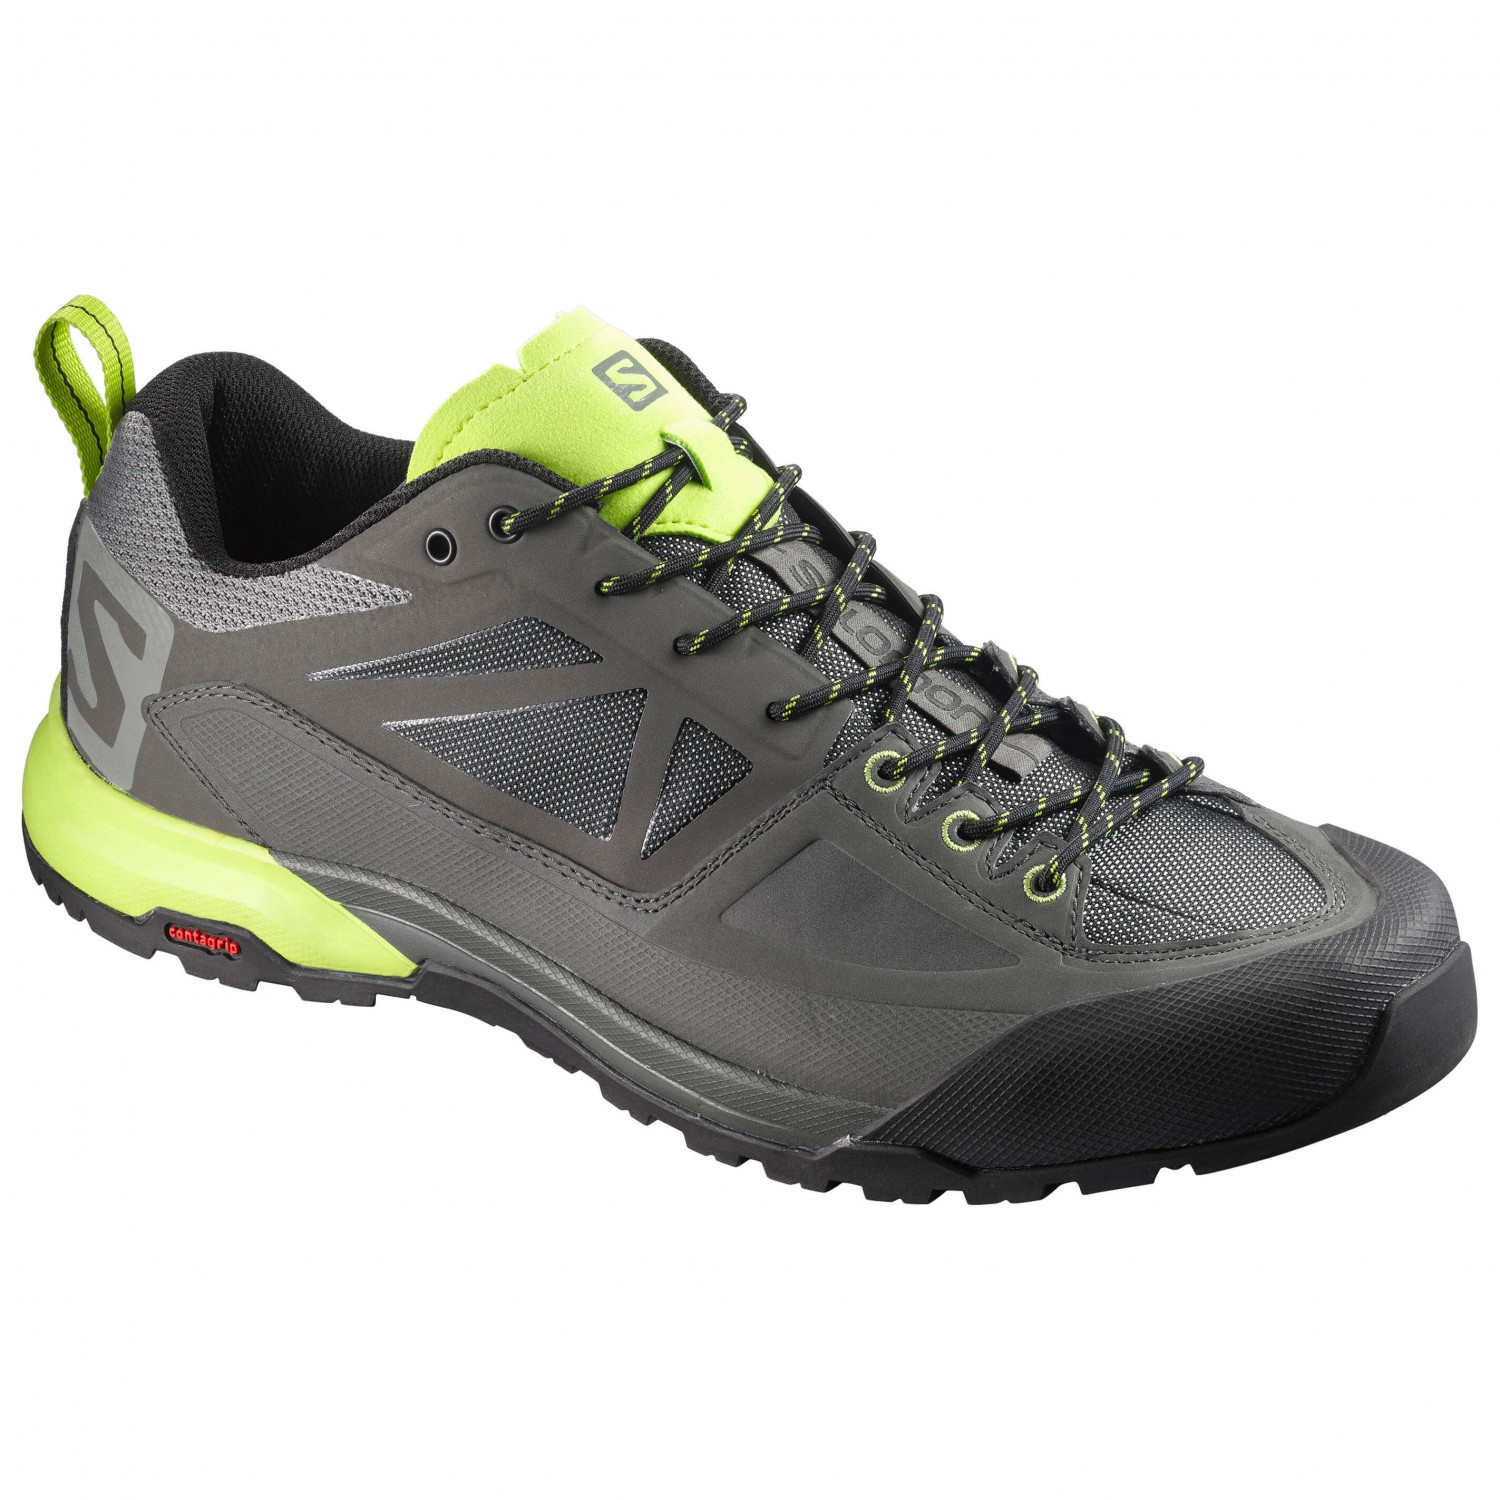 X ALP SPRY - Hikingschuh - castor gray/beluga/lime punch VPIpXOu